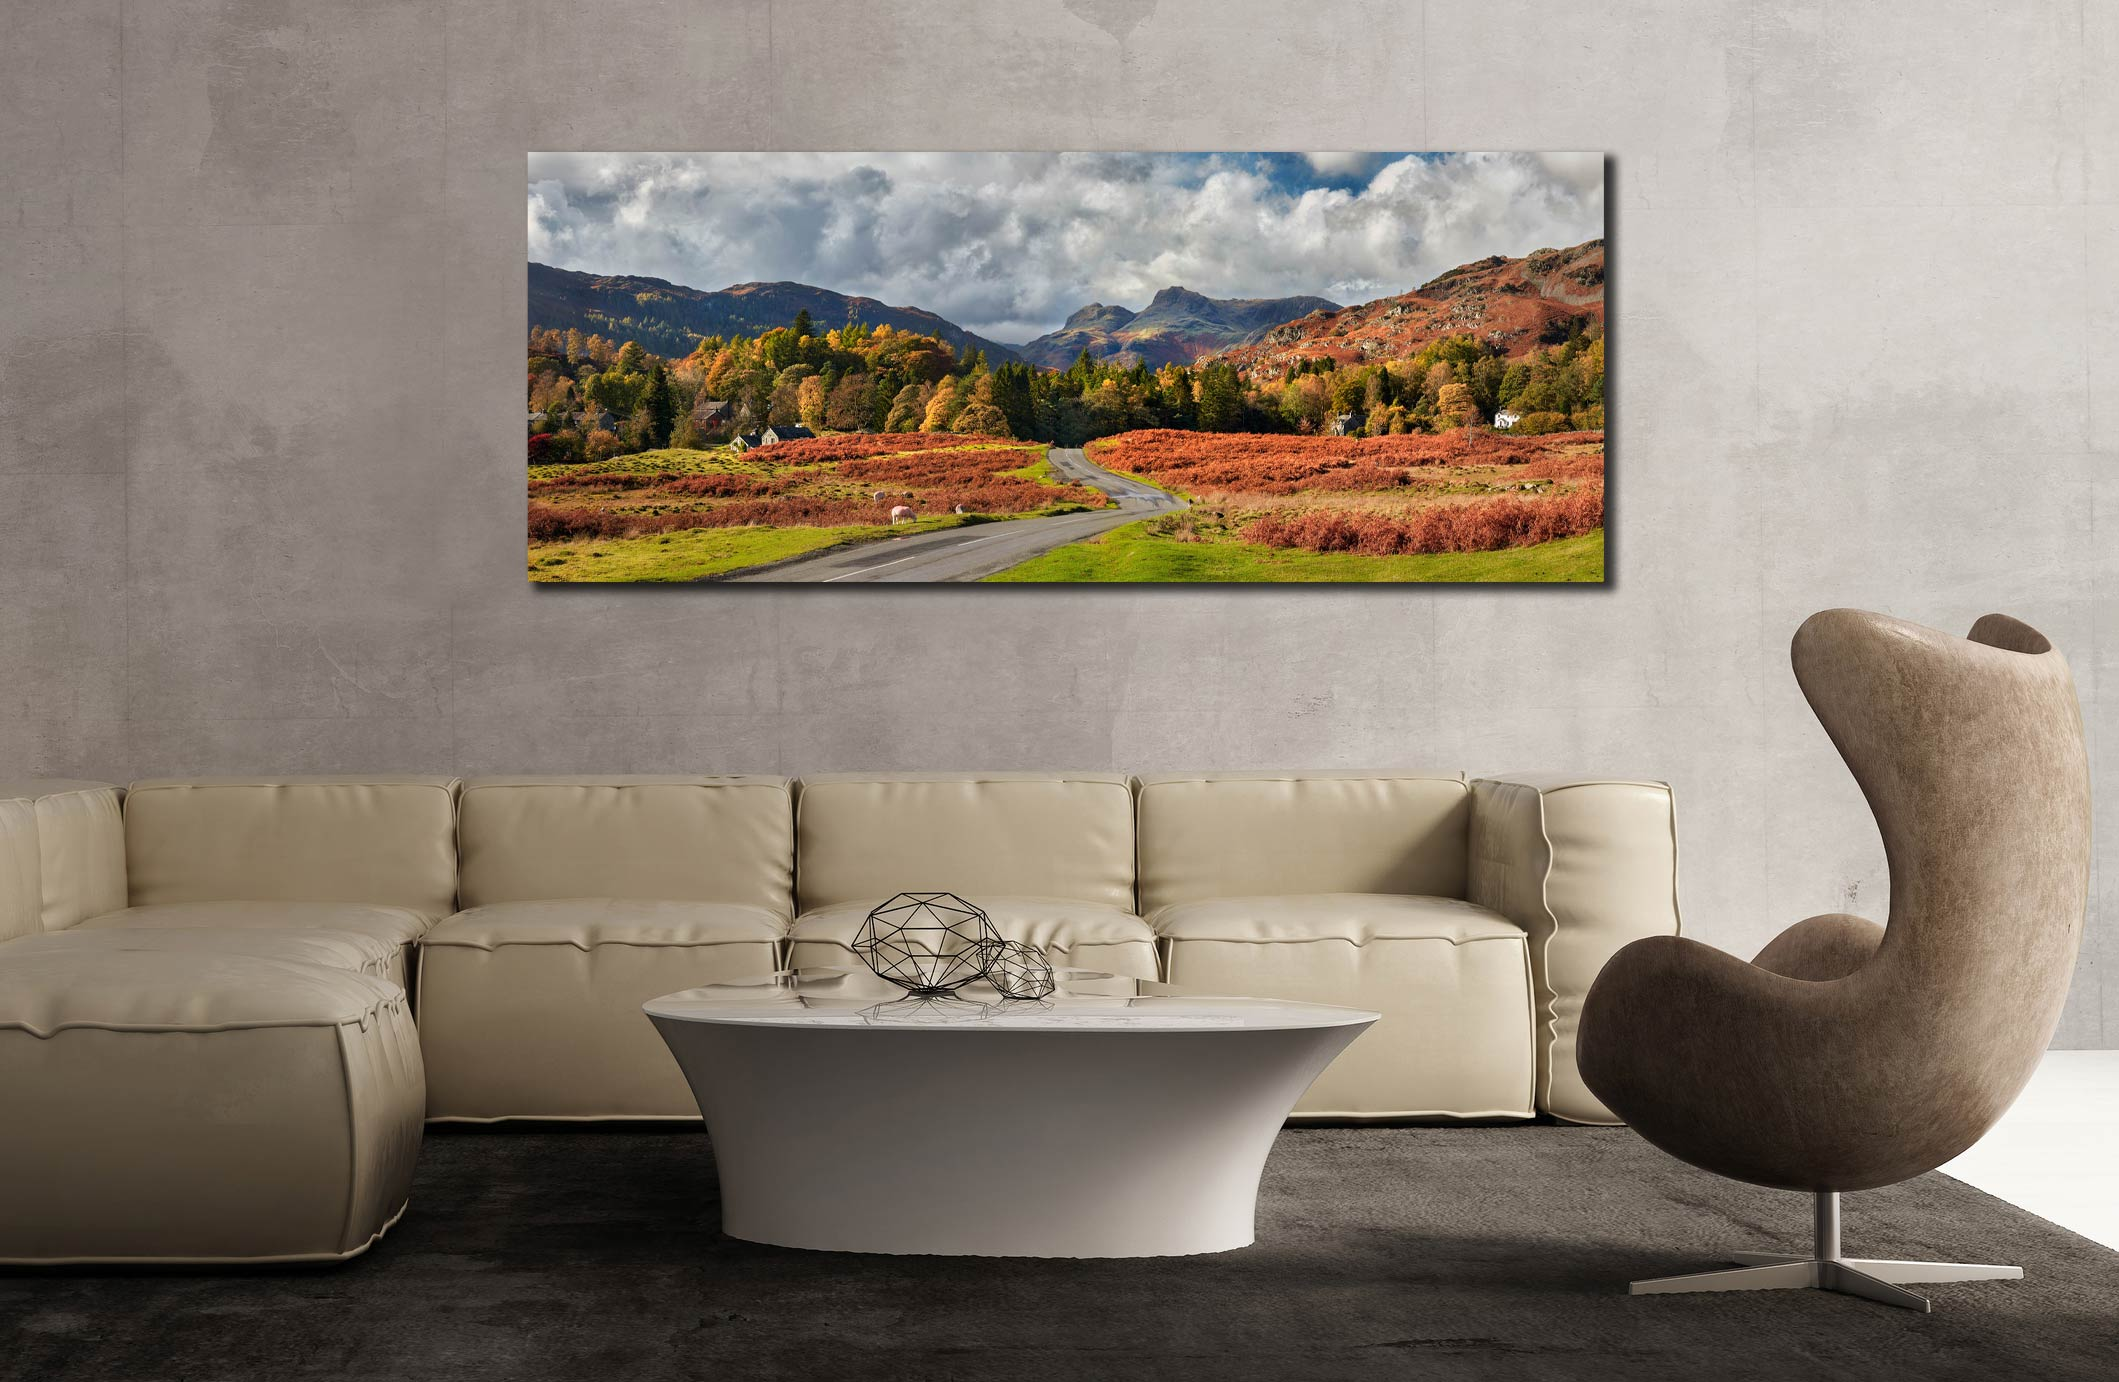 Elterwater common in autumn with the Langdale Pikes in the distance - Print Aluminium Backing With Acrylic Glazing on Wall